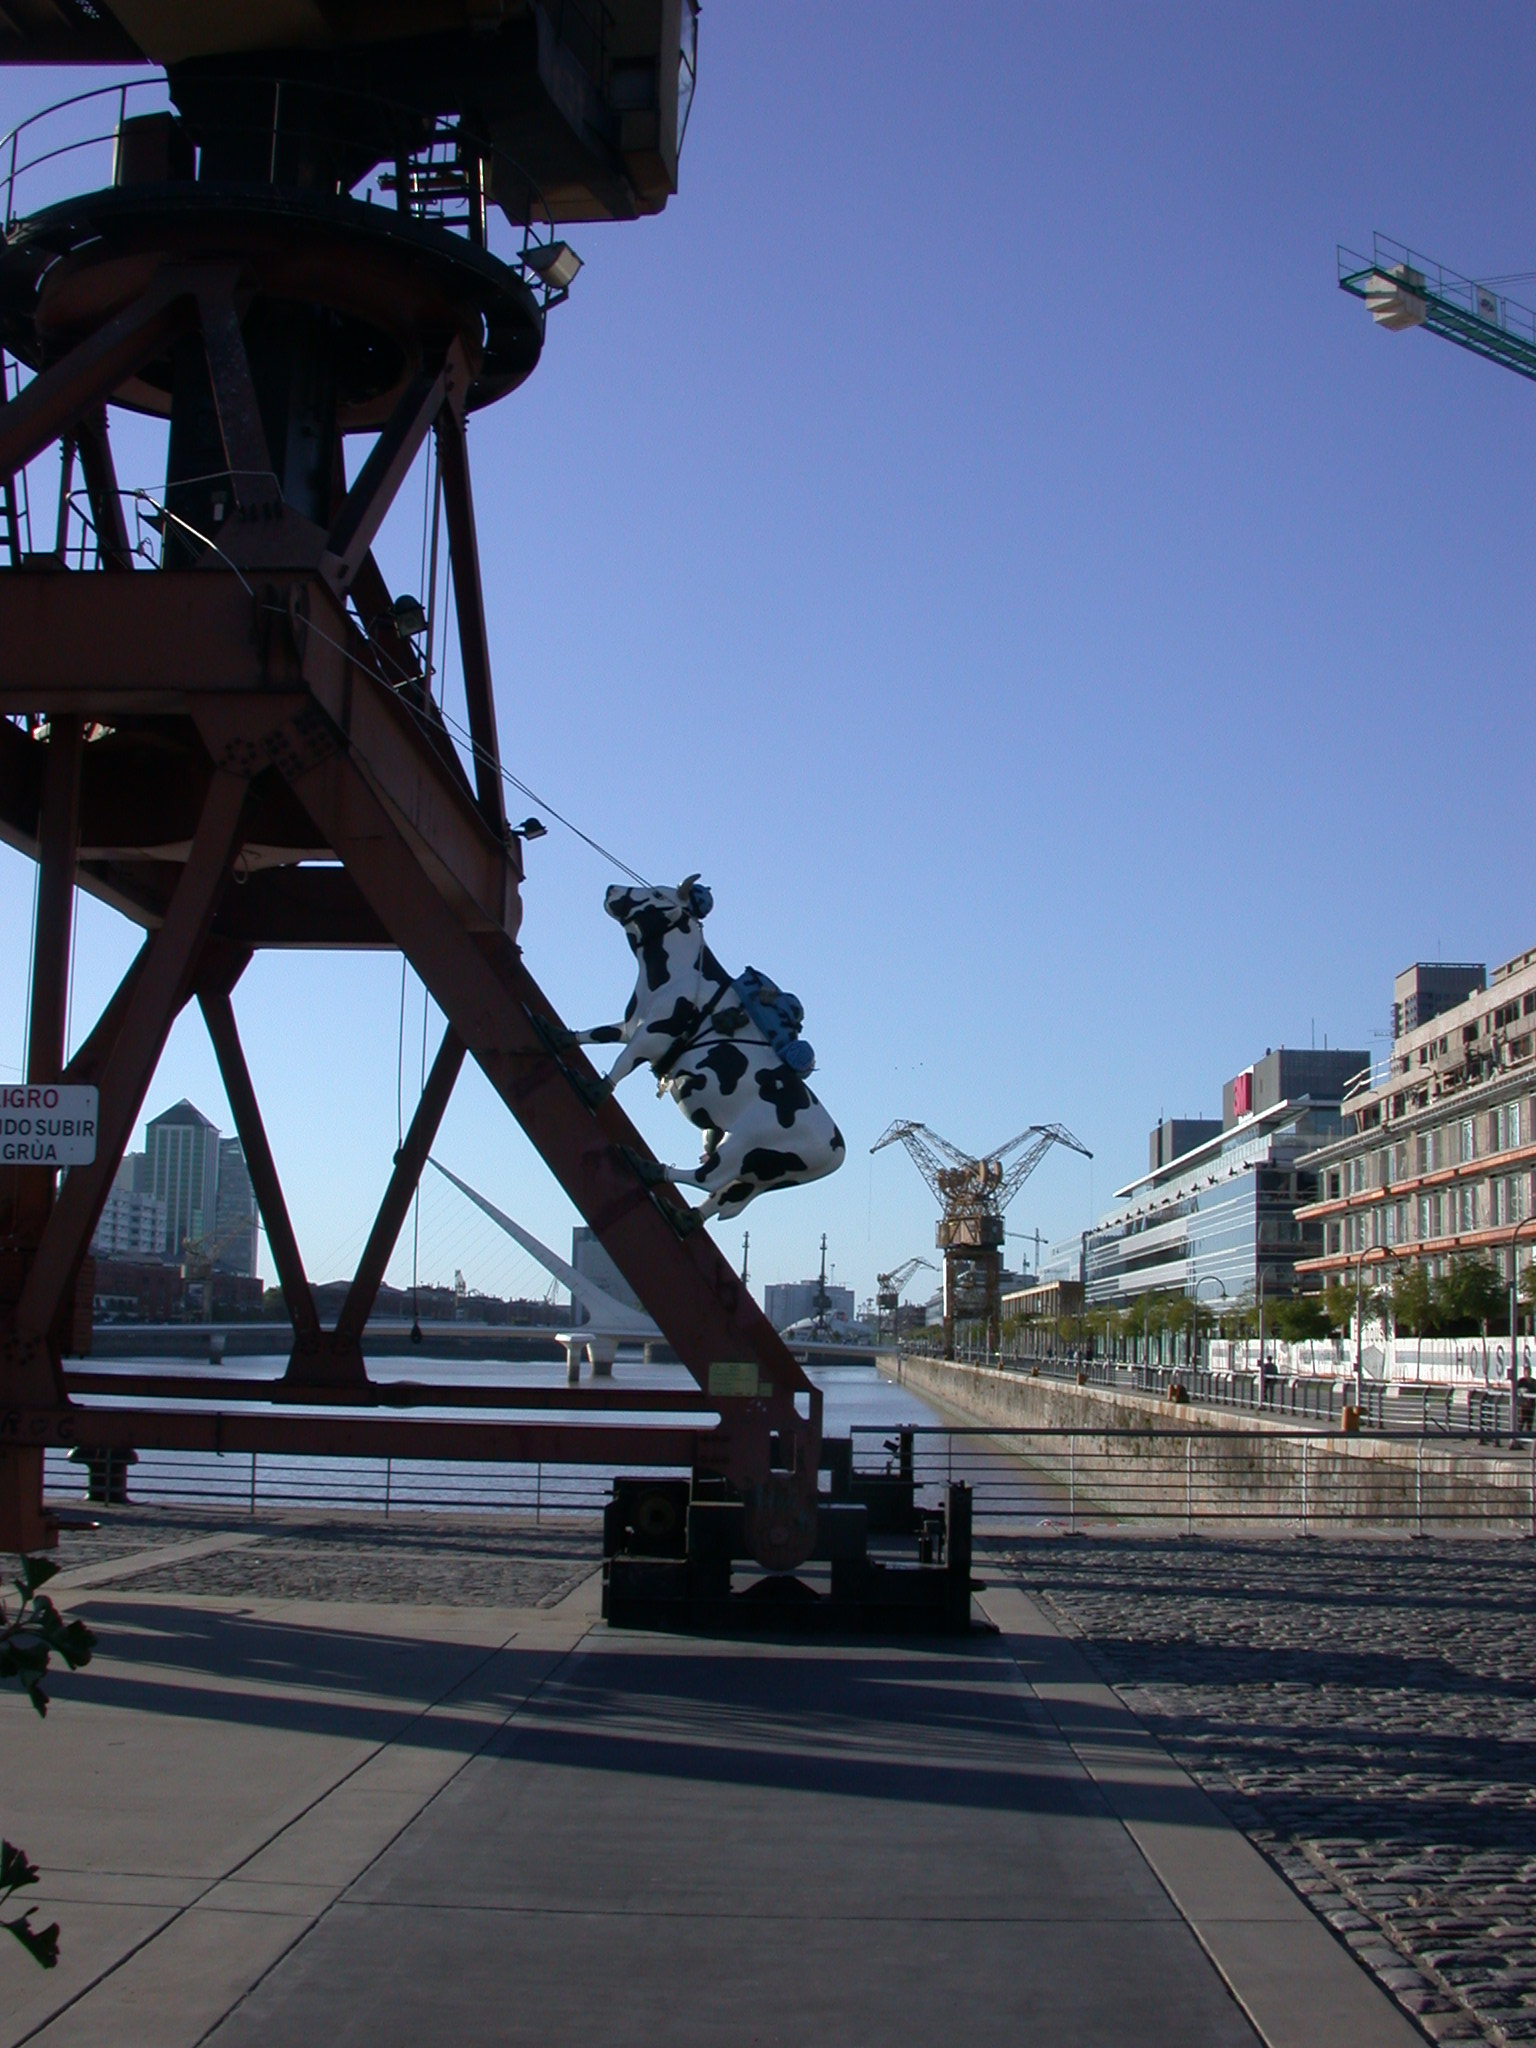 Climbing Cow, Puerto Madero, Buenos Aires, Argentina